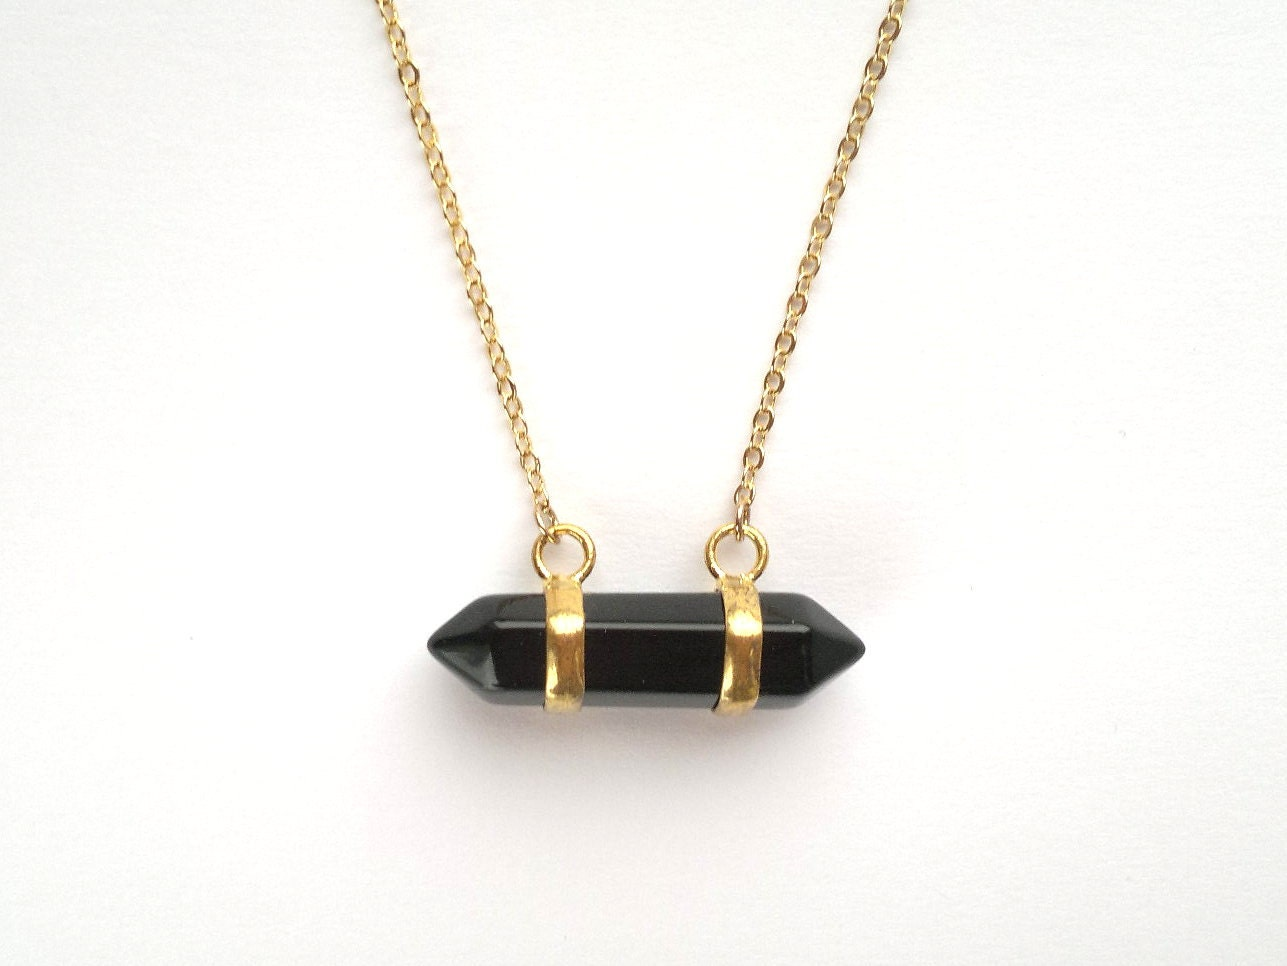 black agate necklace horizontal point necklace